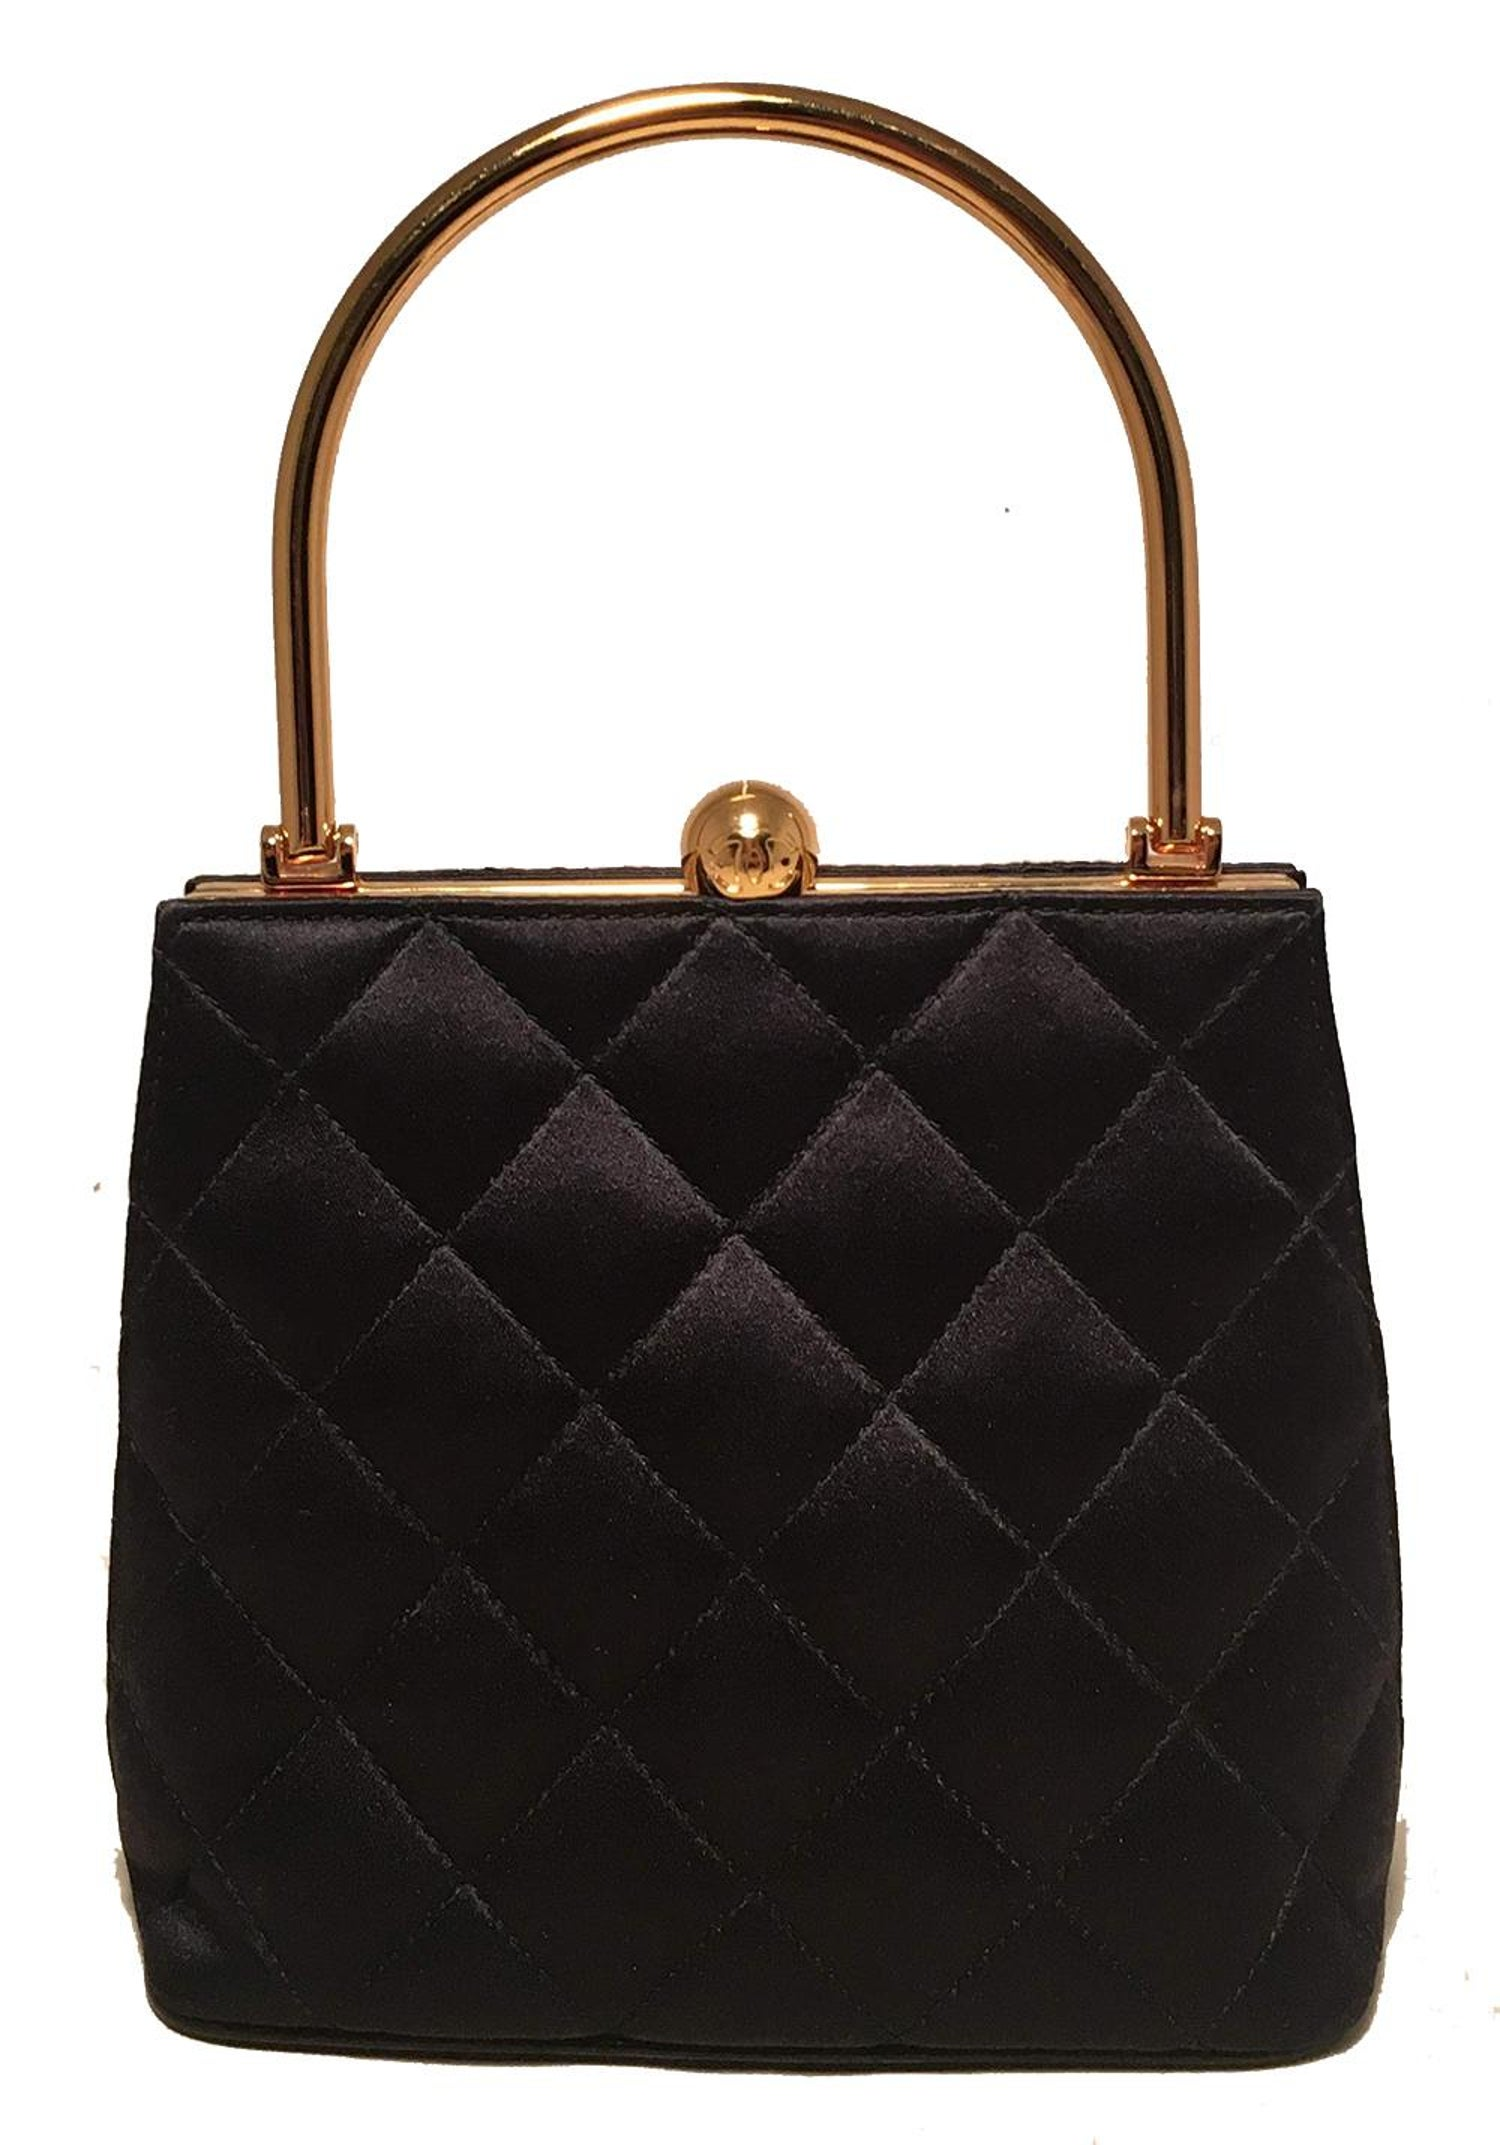 9a4a642895fc63 Chanel Vintage Black Quilted Silk Gold Handle Small Evening Frame Bag For  Sale at 1stdibs